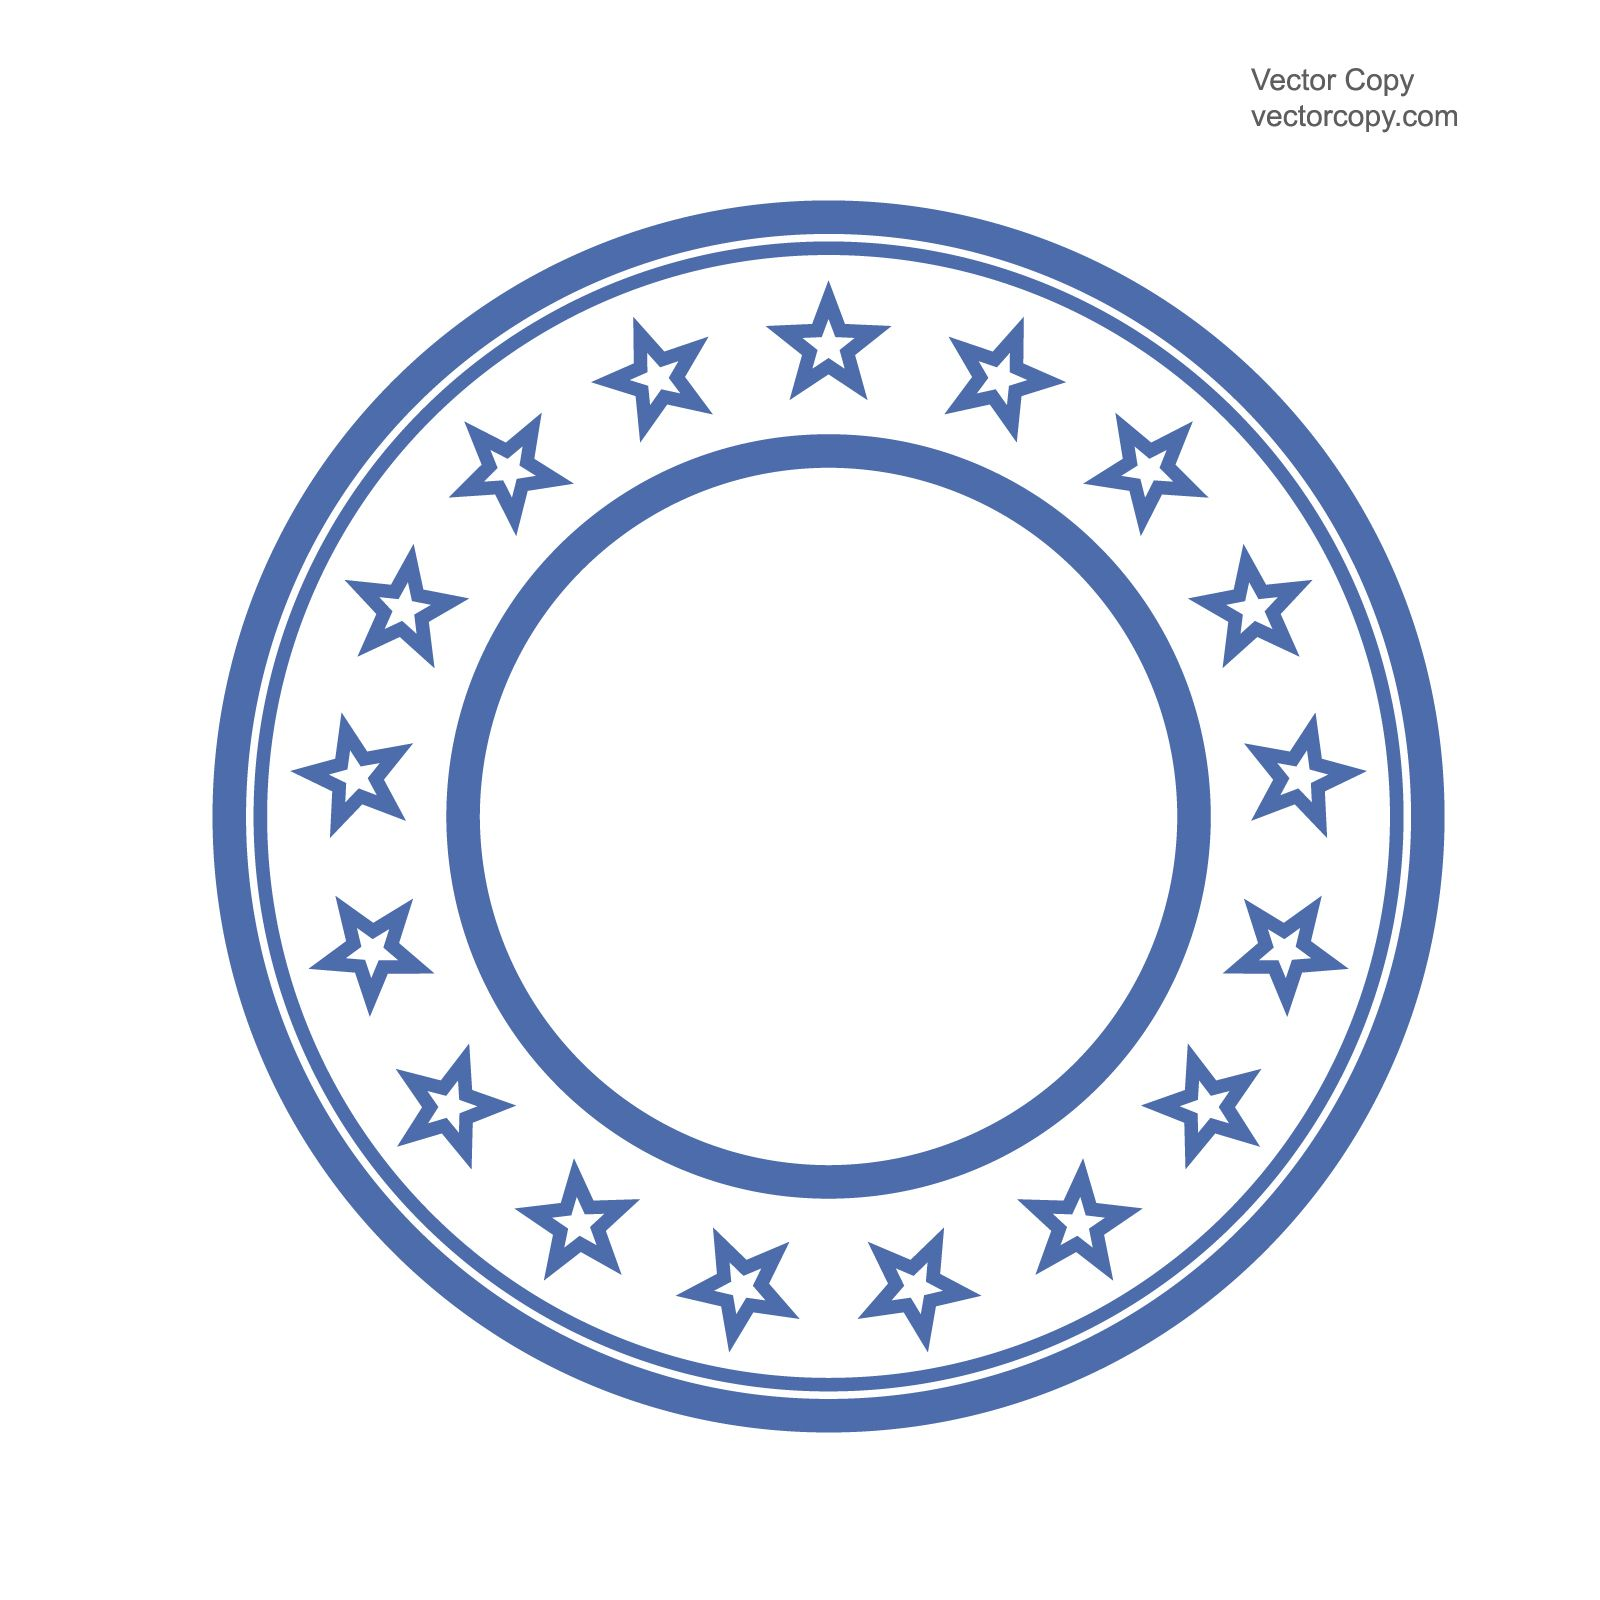 Blank Template Of Round Stamp Free Vector Vectorart